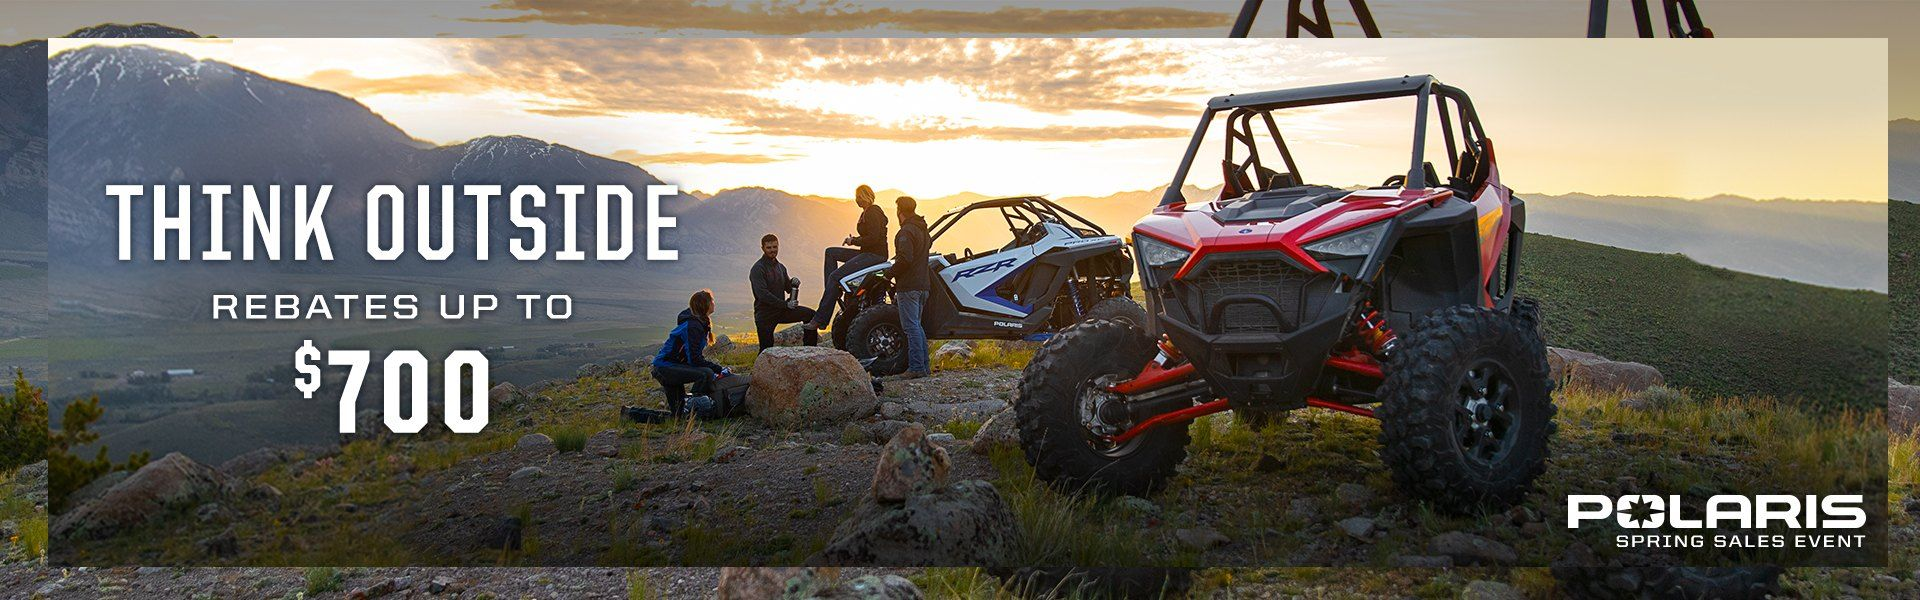 Polaris RZR Spring Sales Event